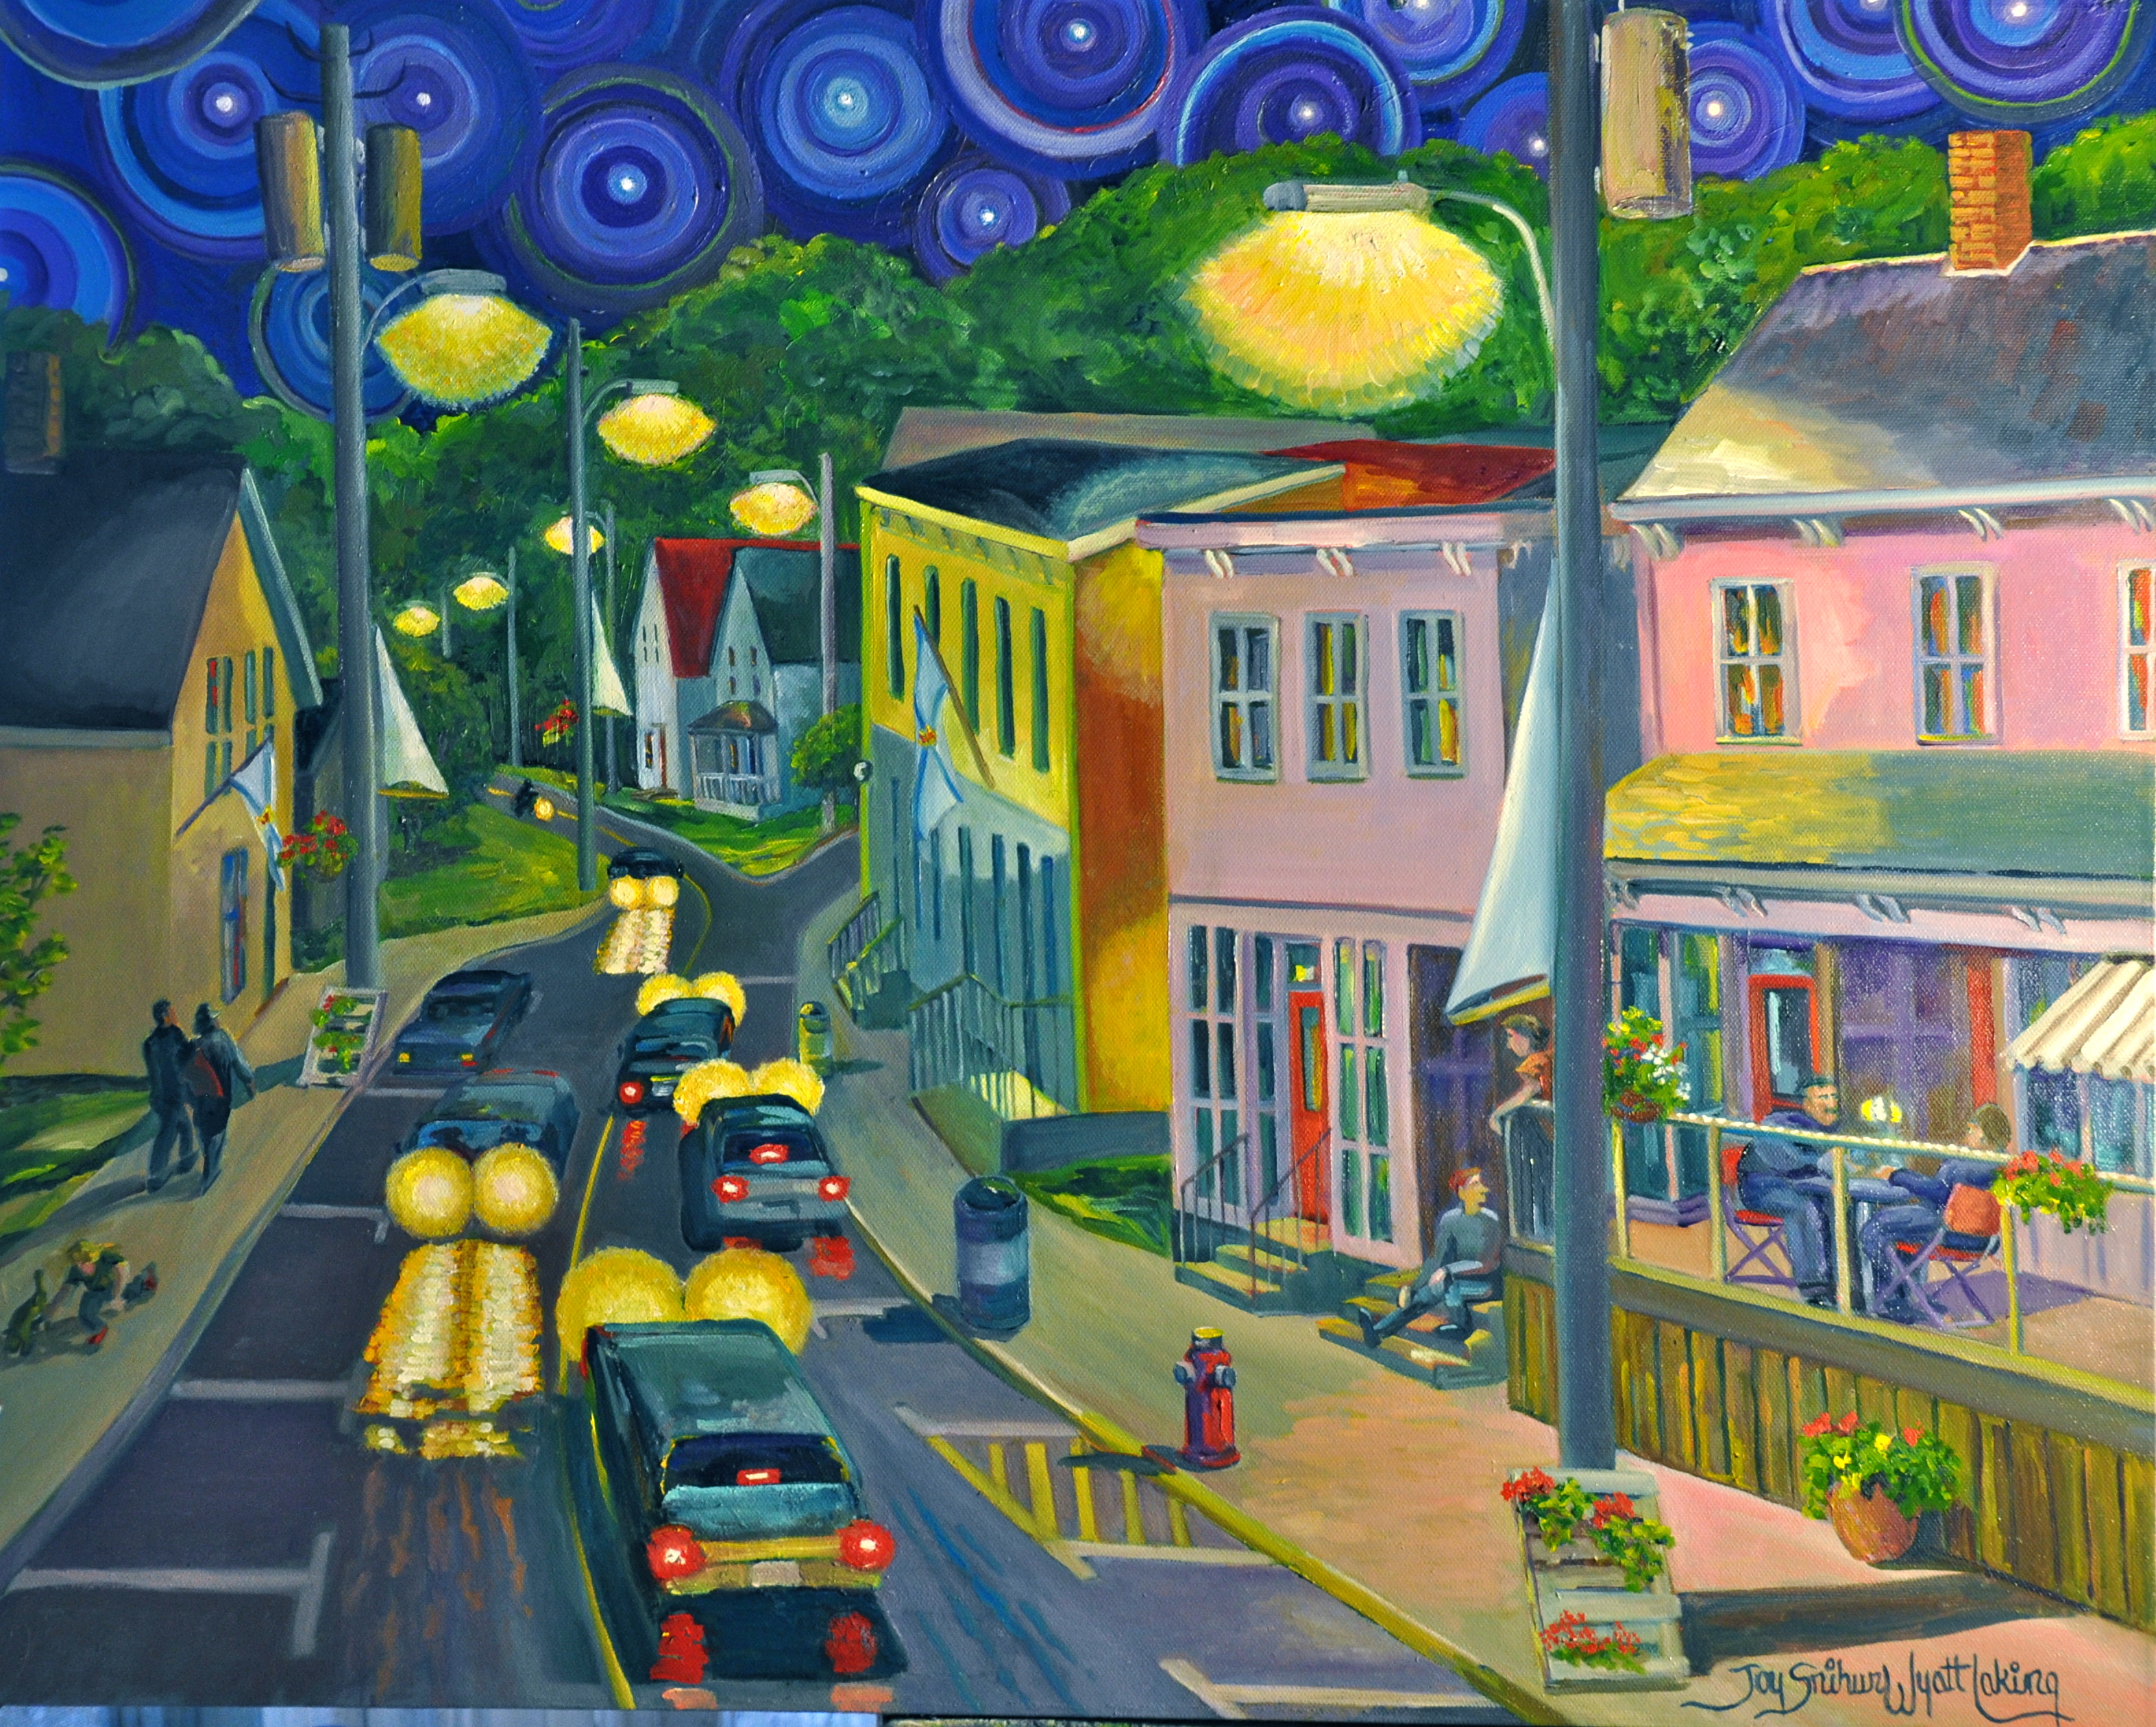 starry night parrsboro joy laking gallery starry night parrsboro